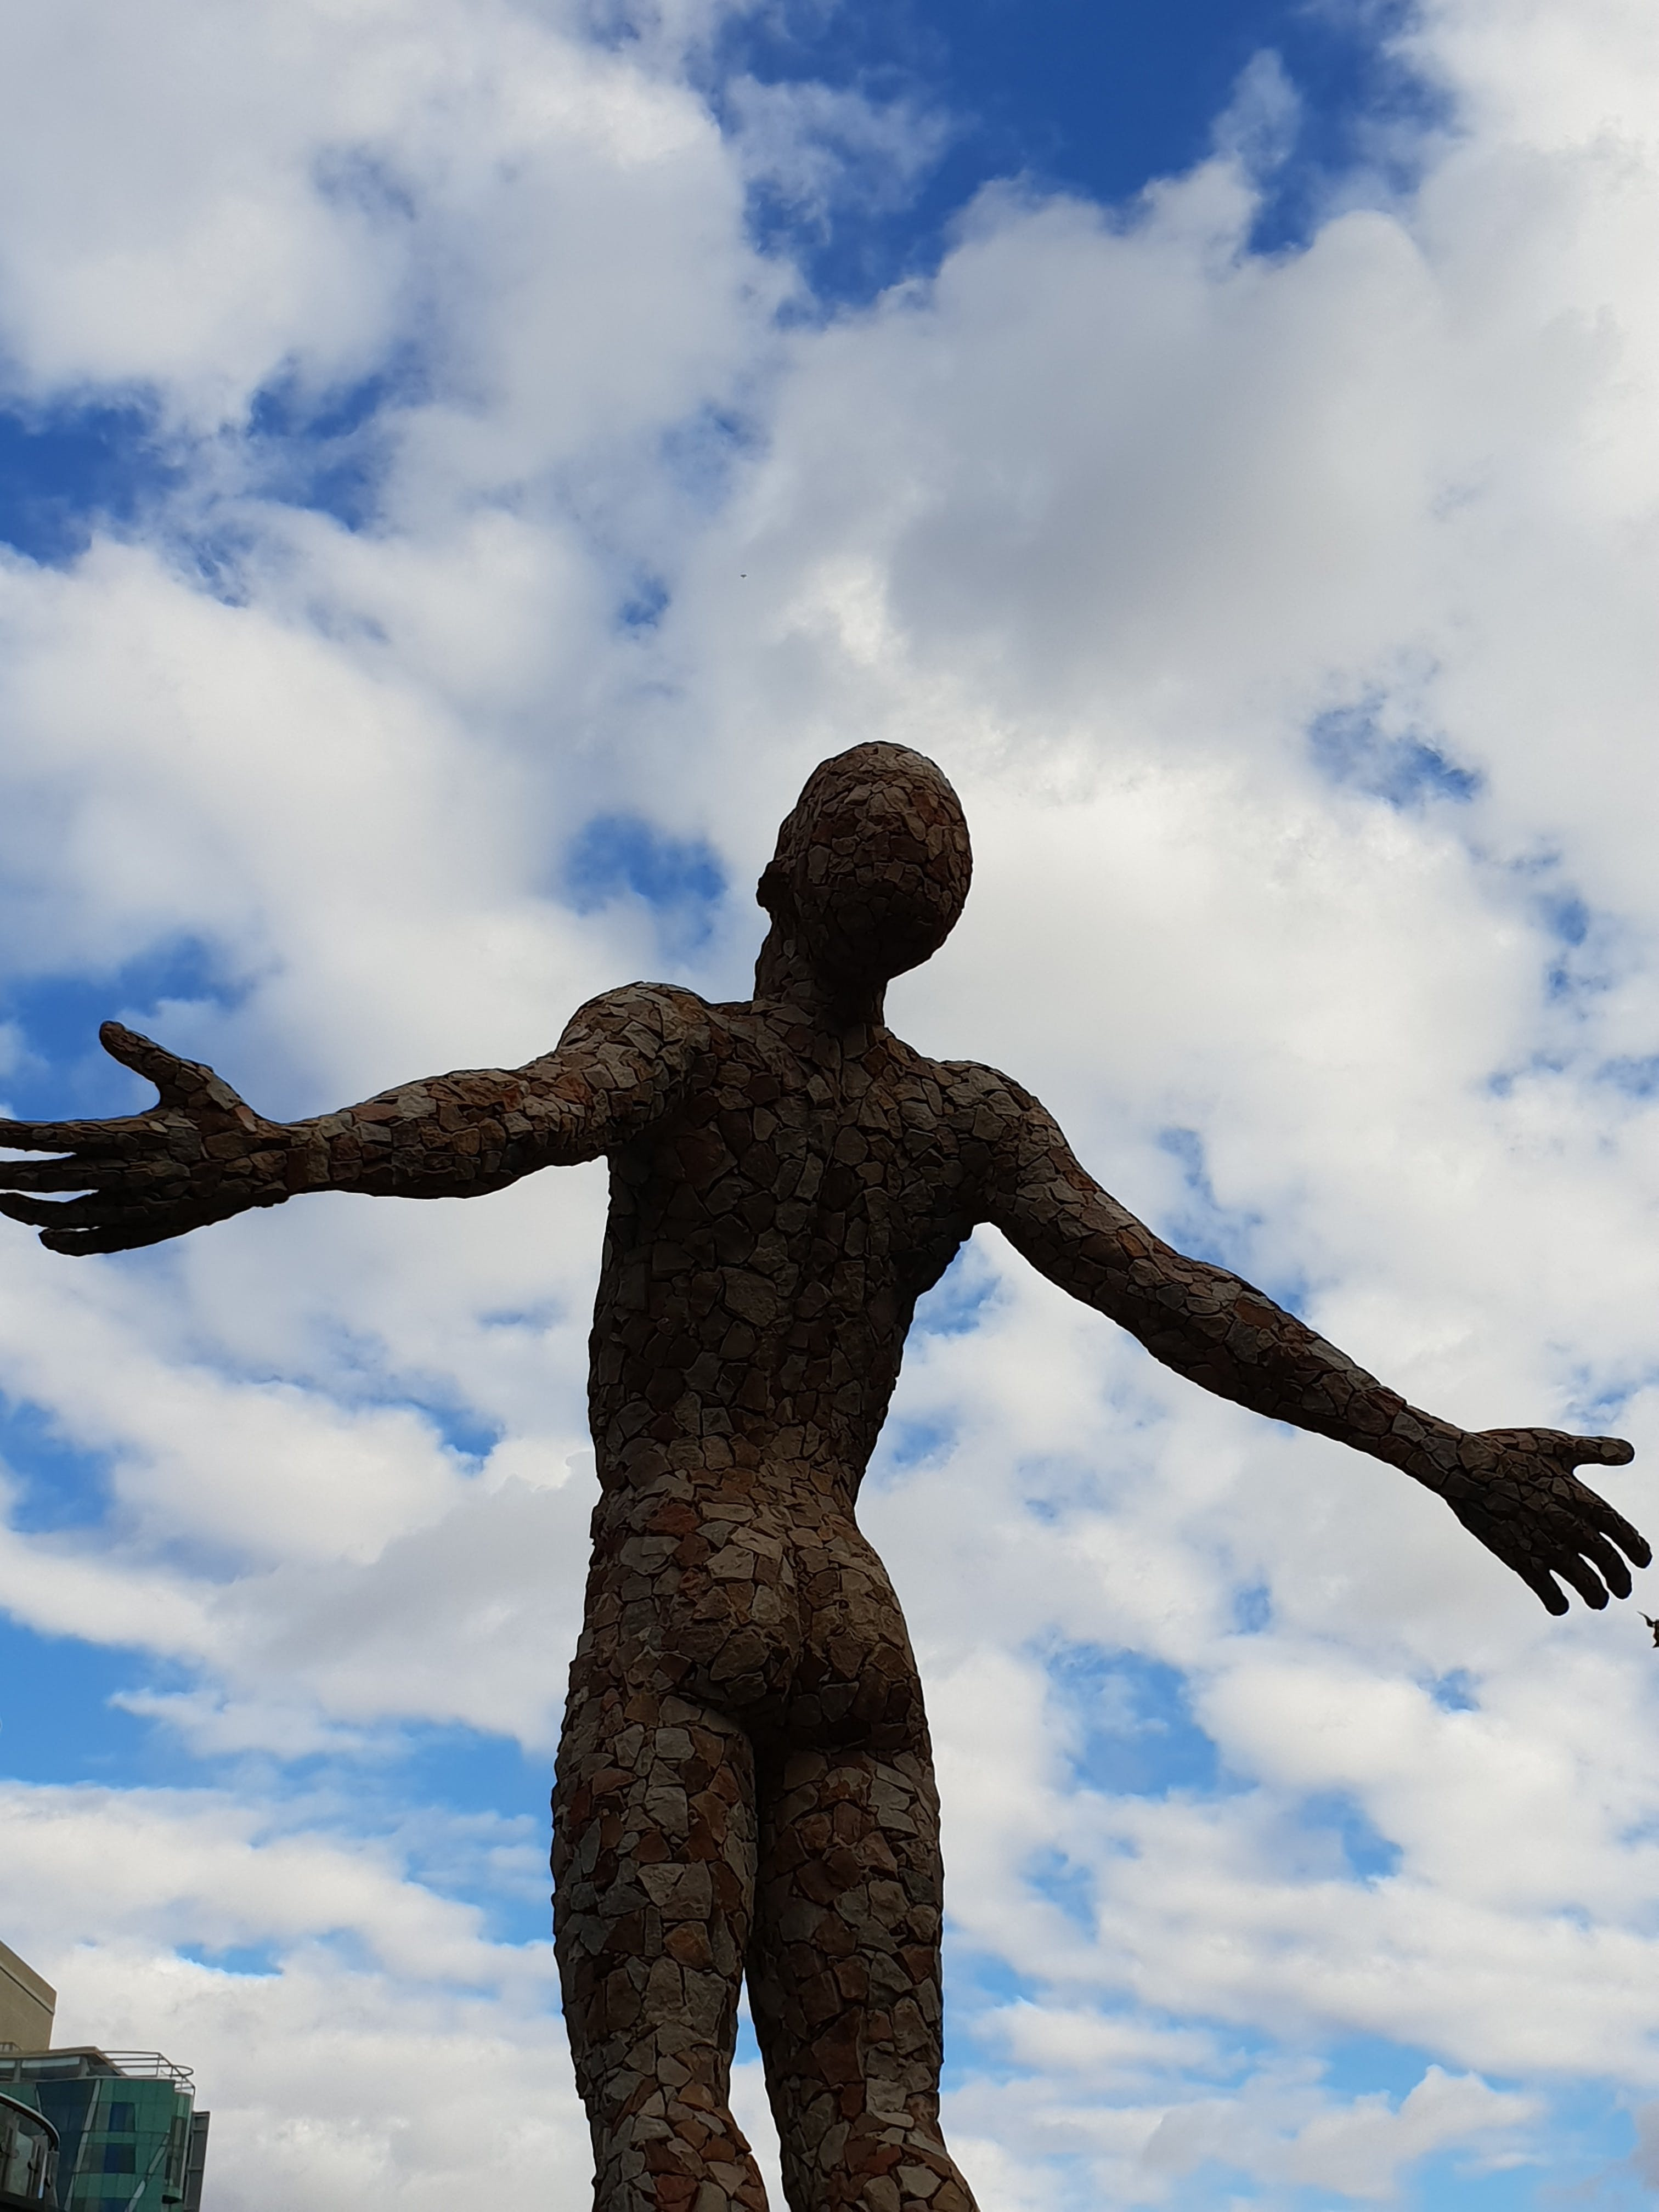 Free stock photo of man, free, freedom, statue